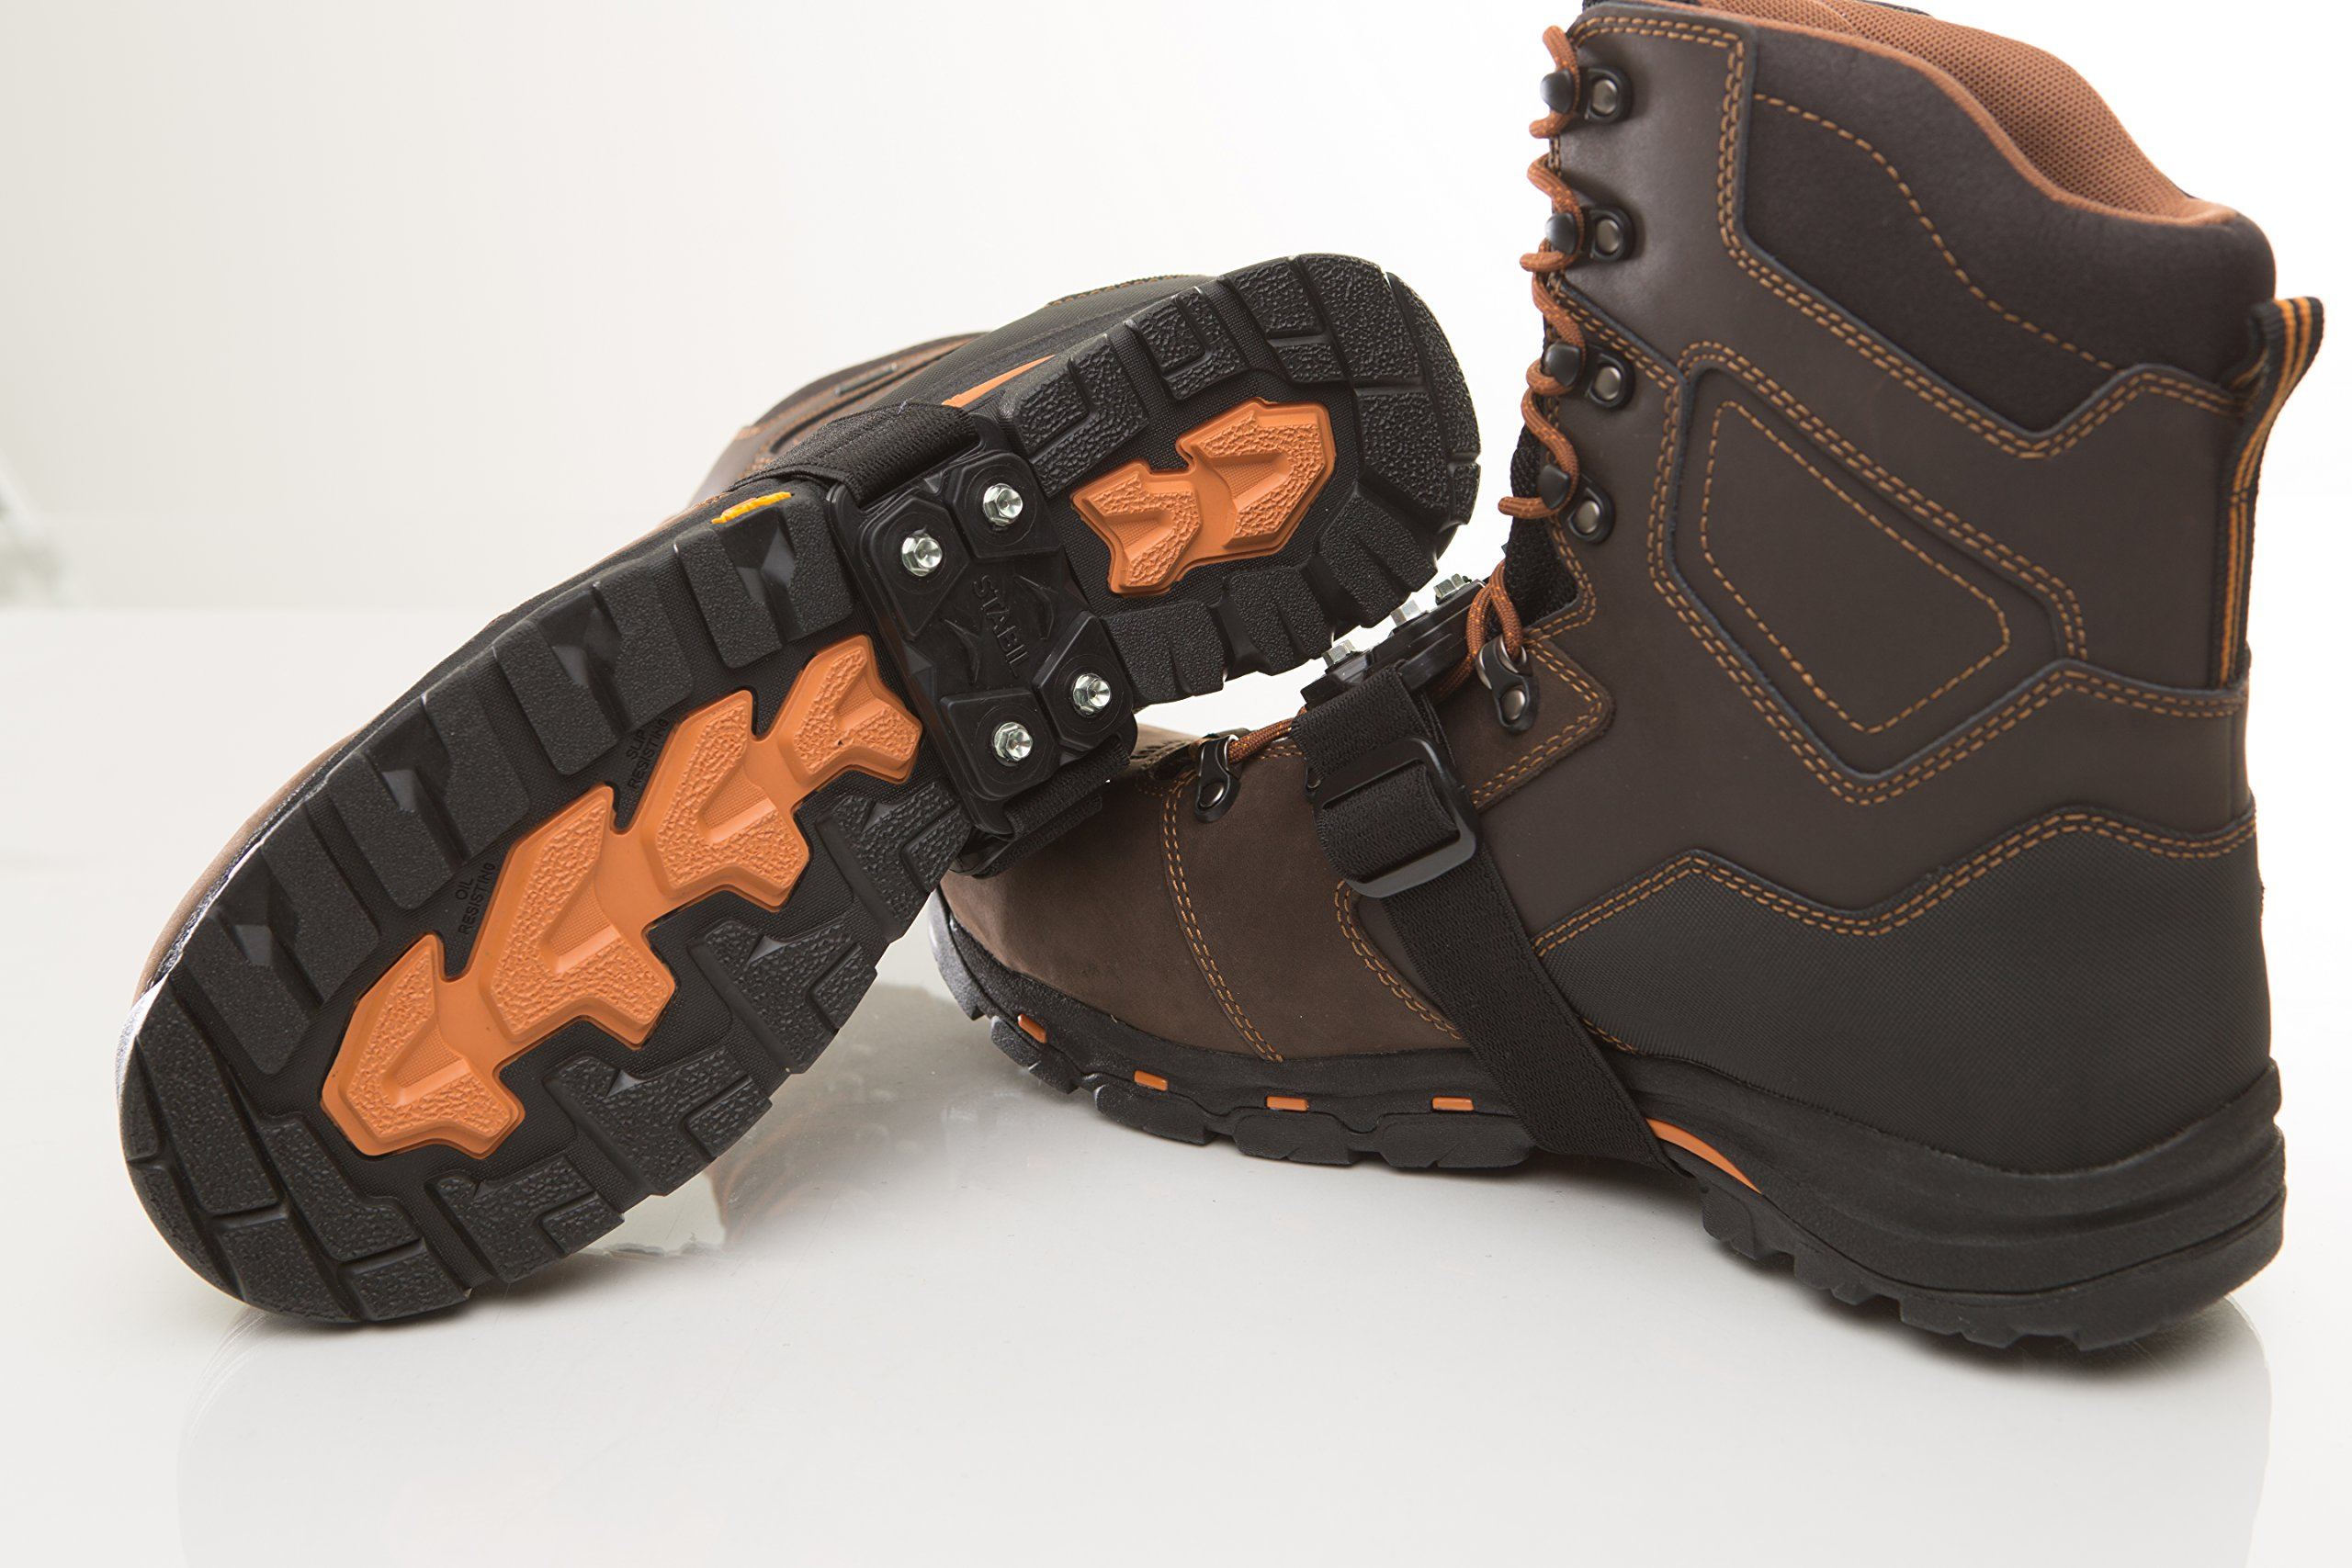 IMPACTO MidCleat Traction Ice Cleat and Tread for Snow & Ice, 1 Pair